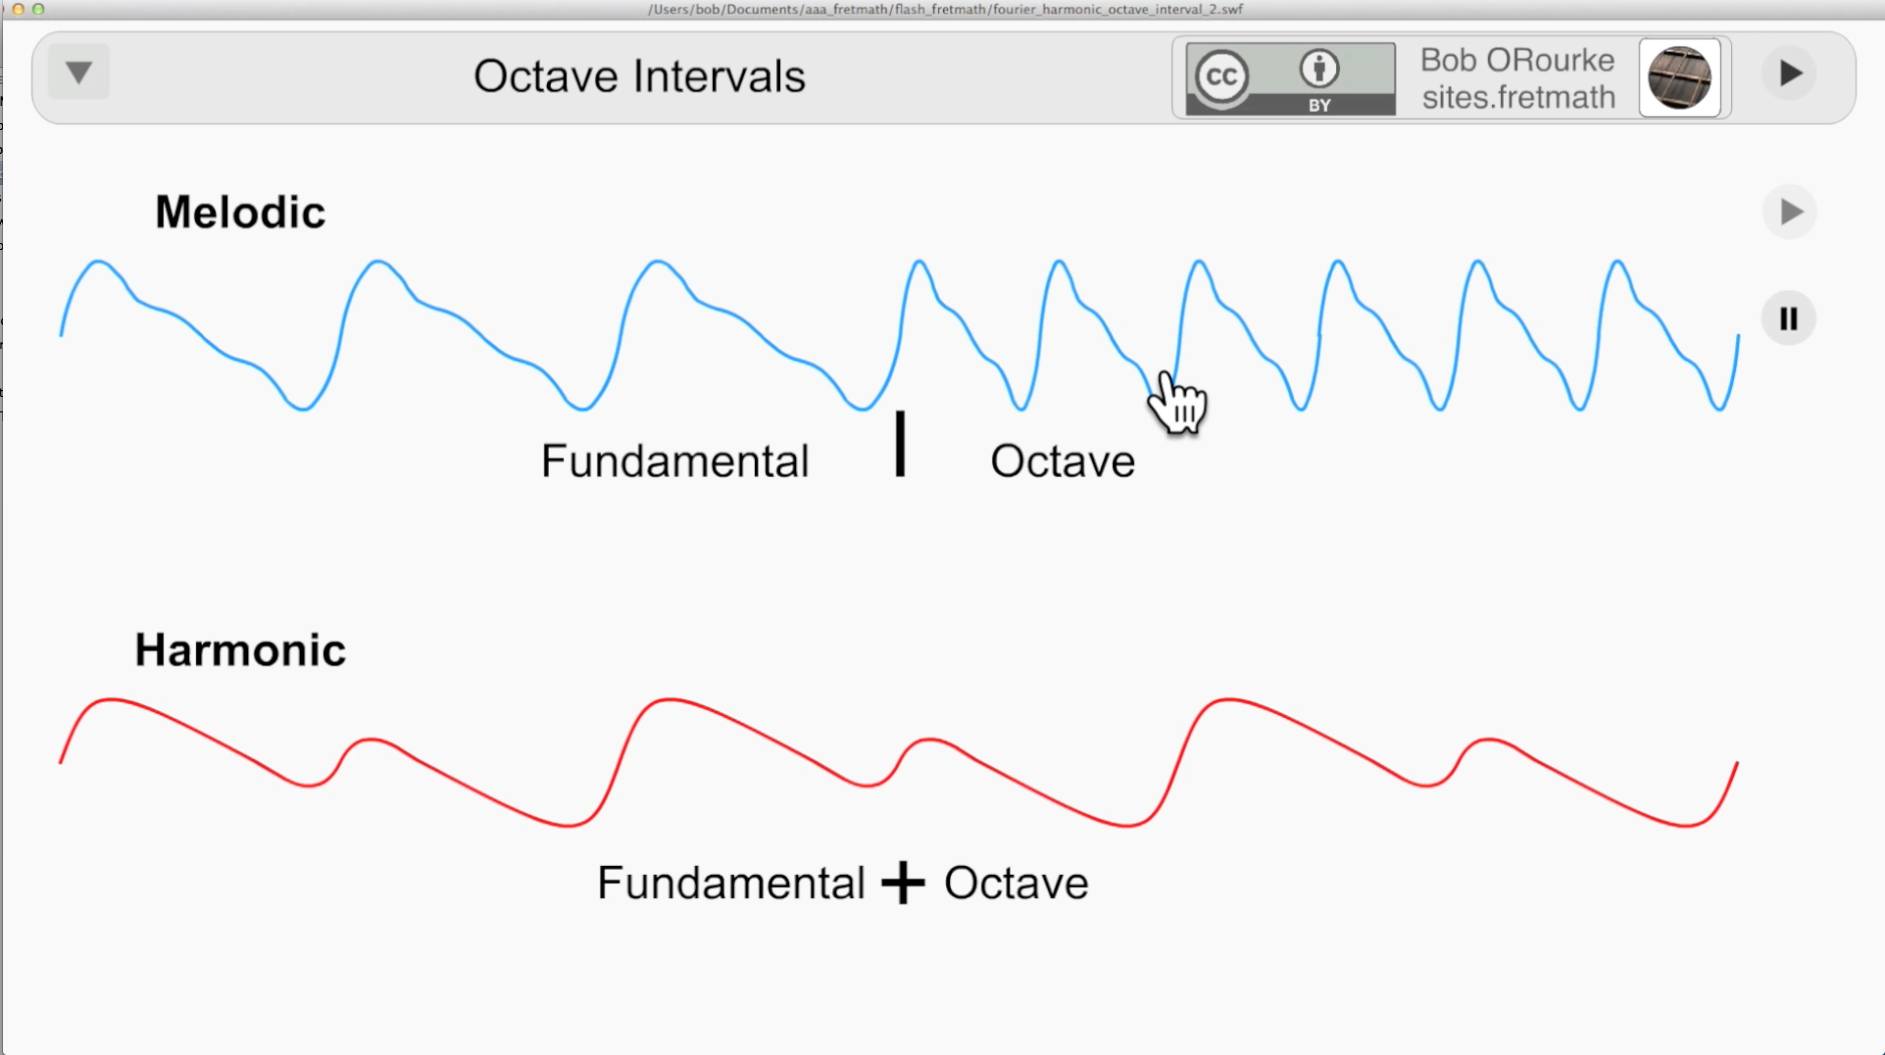 Octave Interval - Melodic and Harmonic Compared - (My